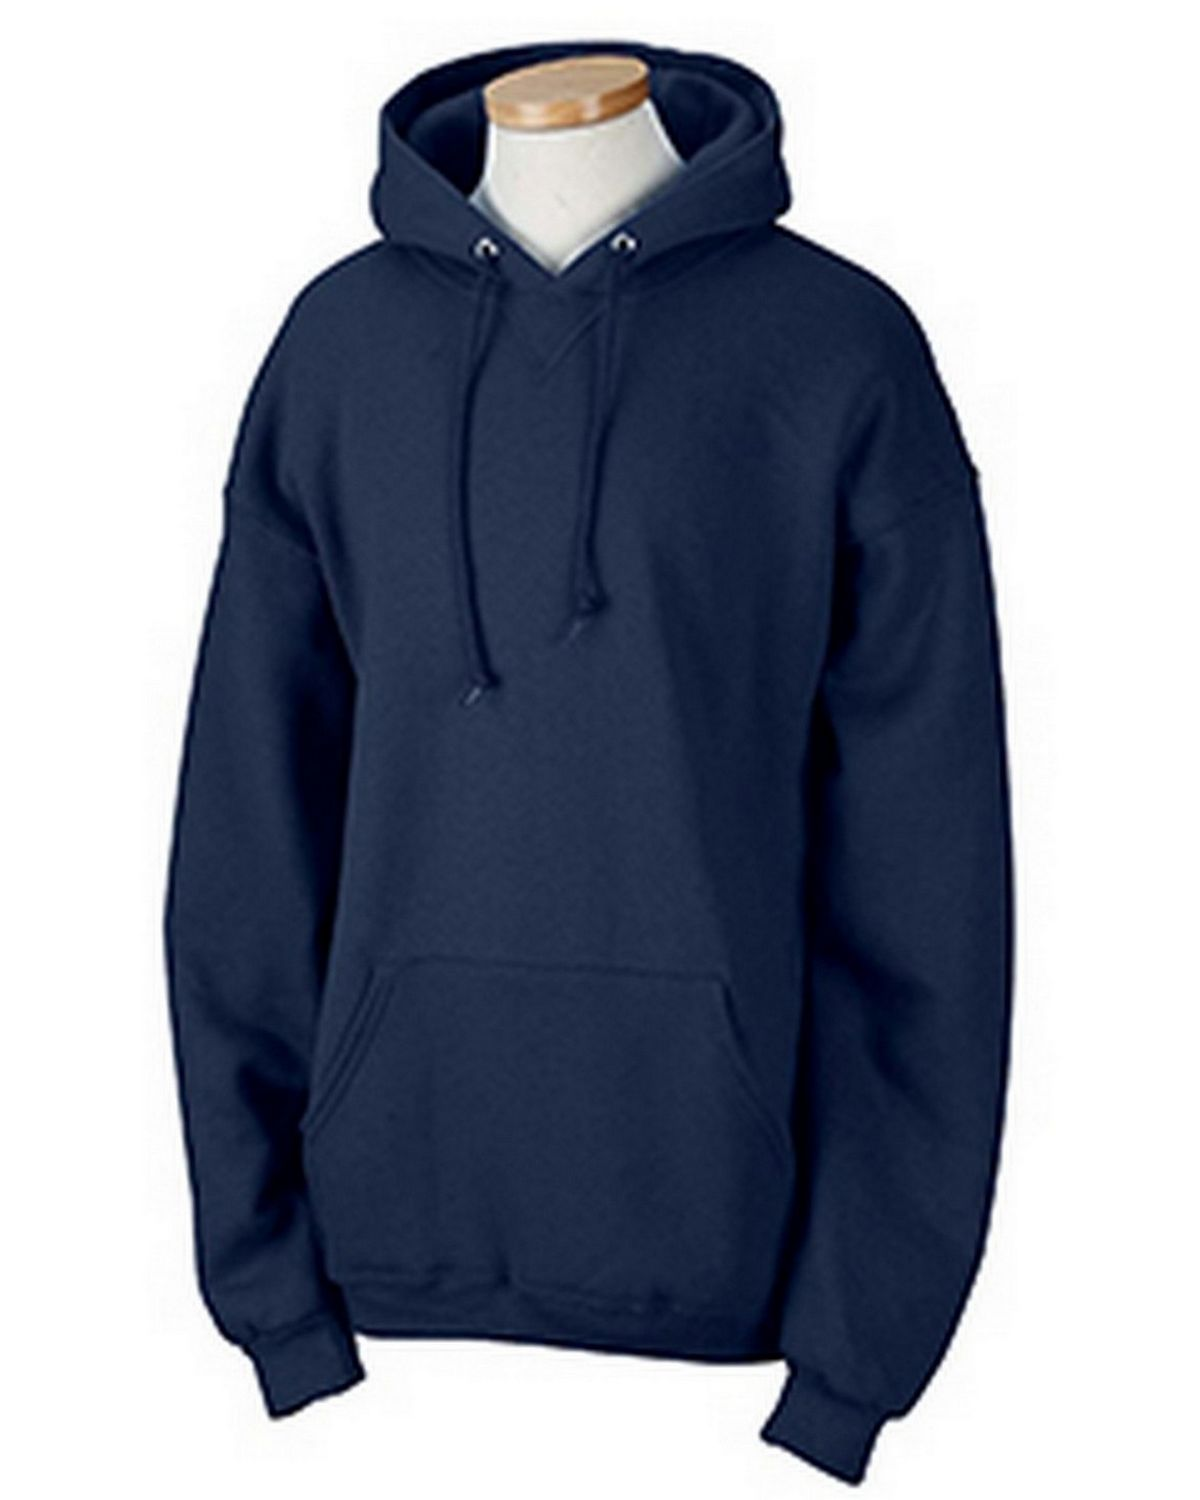 Russell Athletic 695HBM Dri-Power Fleece Pullover Hood ...